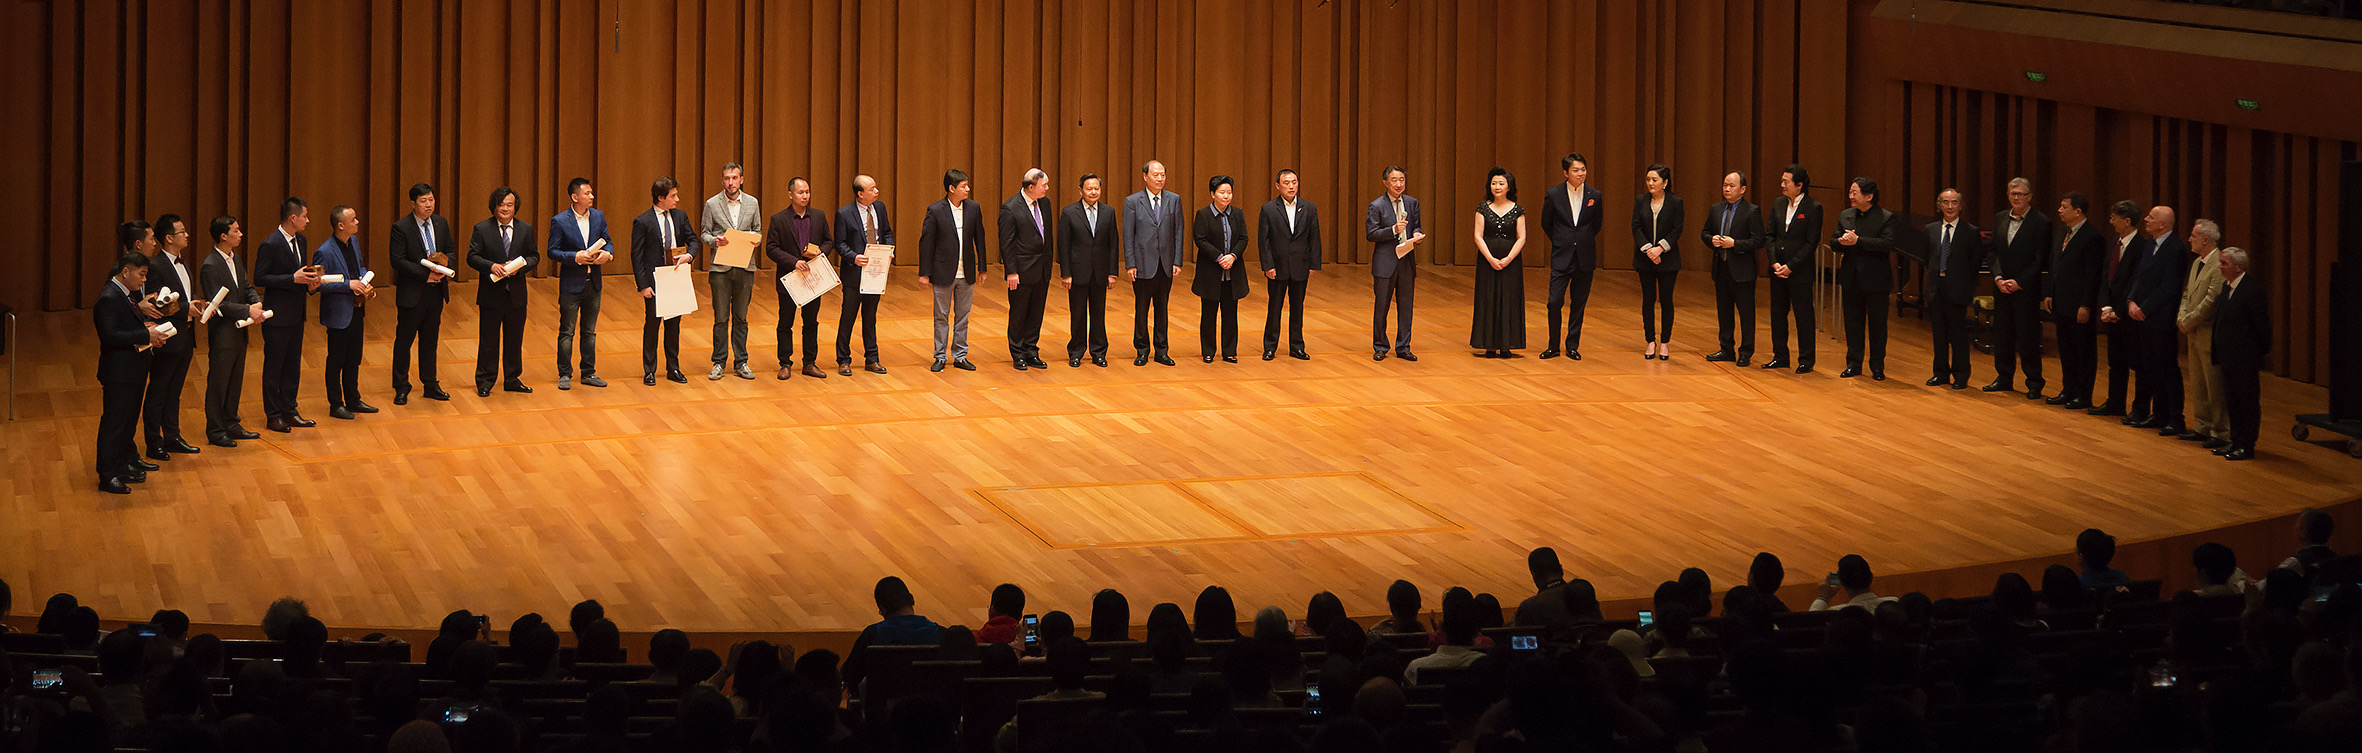 Award winners of the 4th China International Violin and Bow Making Competition on stage at the National Centre for the Performing Arts (NCPA) in Beijing.